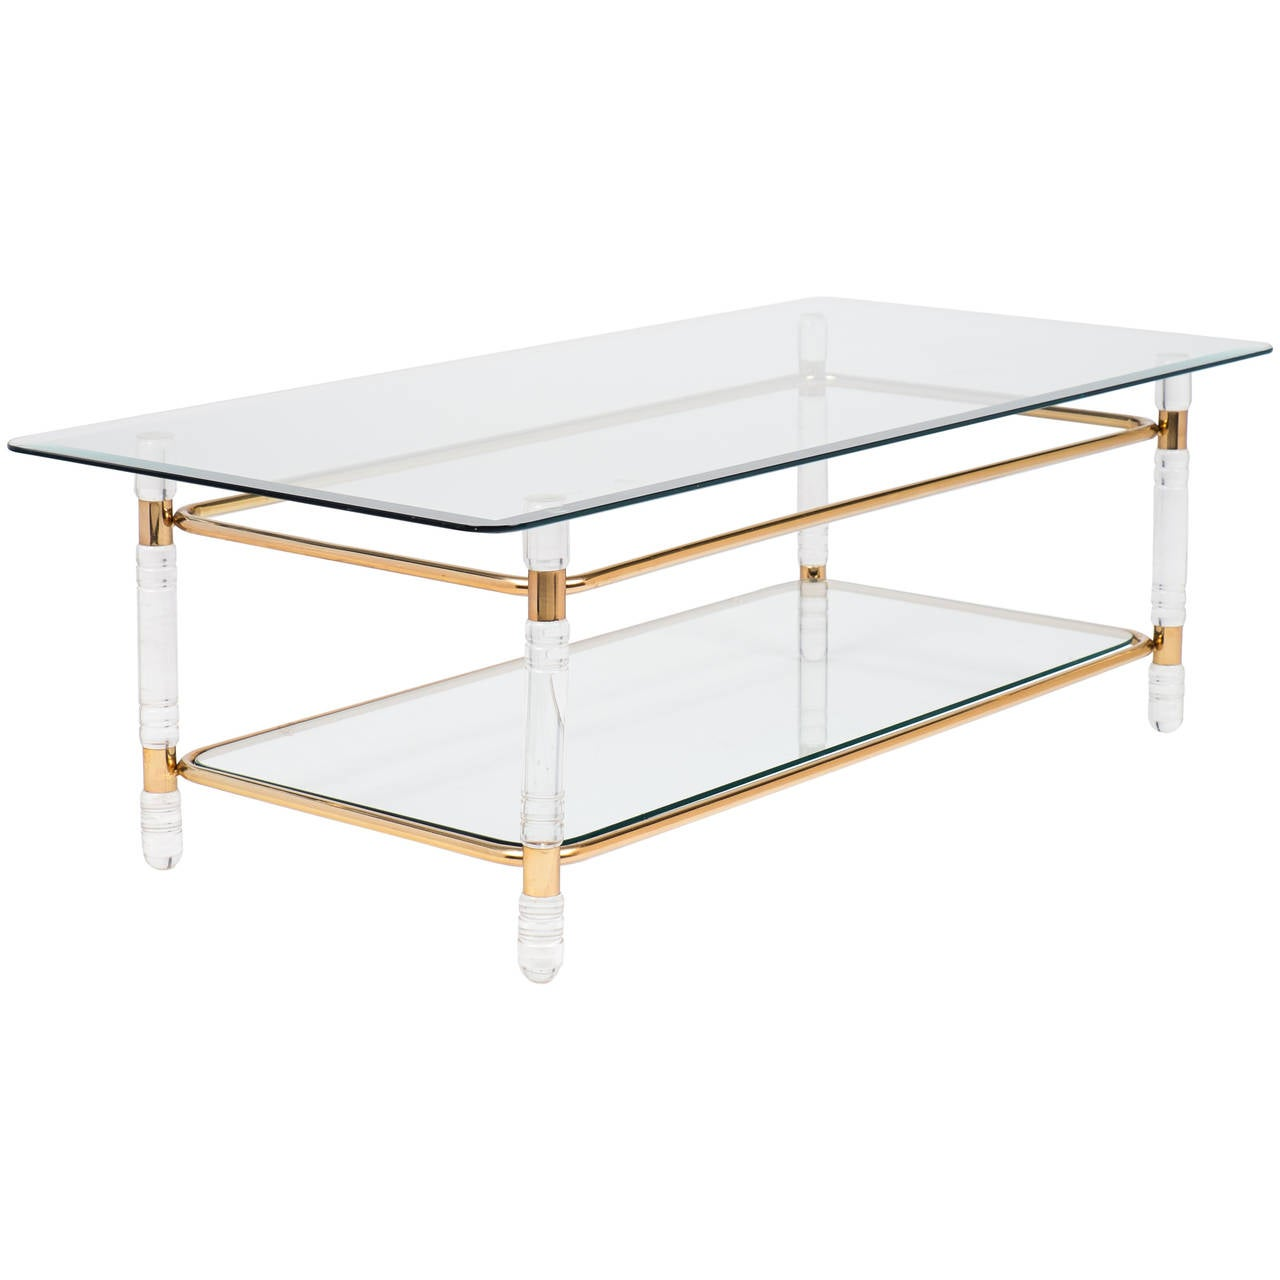 French vintage lucite and gilt brass coffee table at 1stdibs for Lucite and brass coffee table